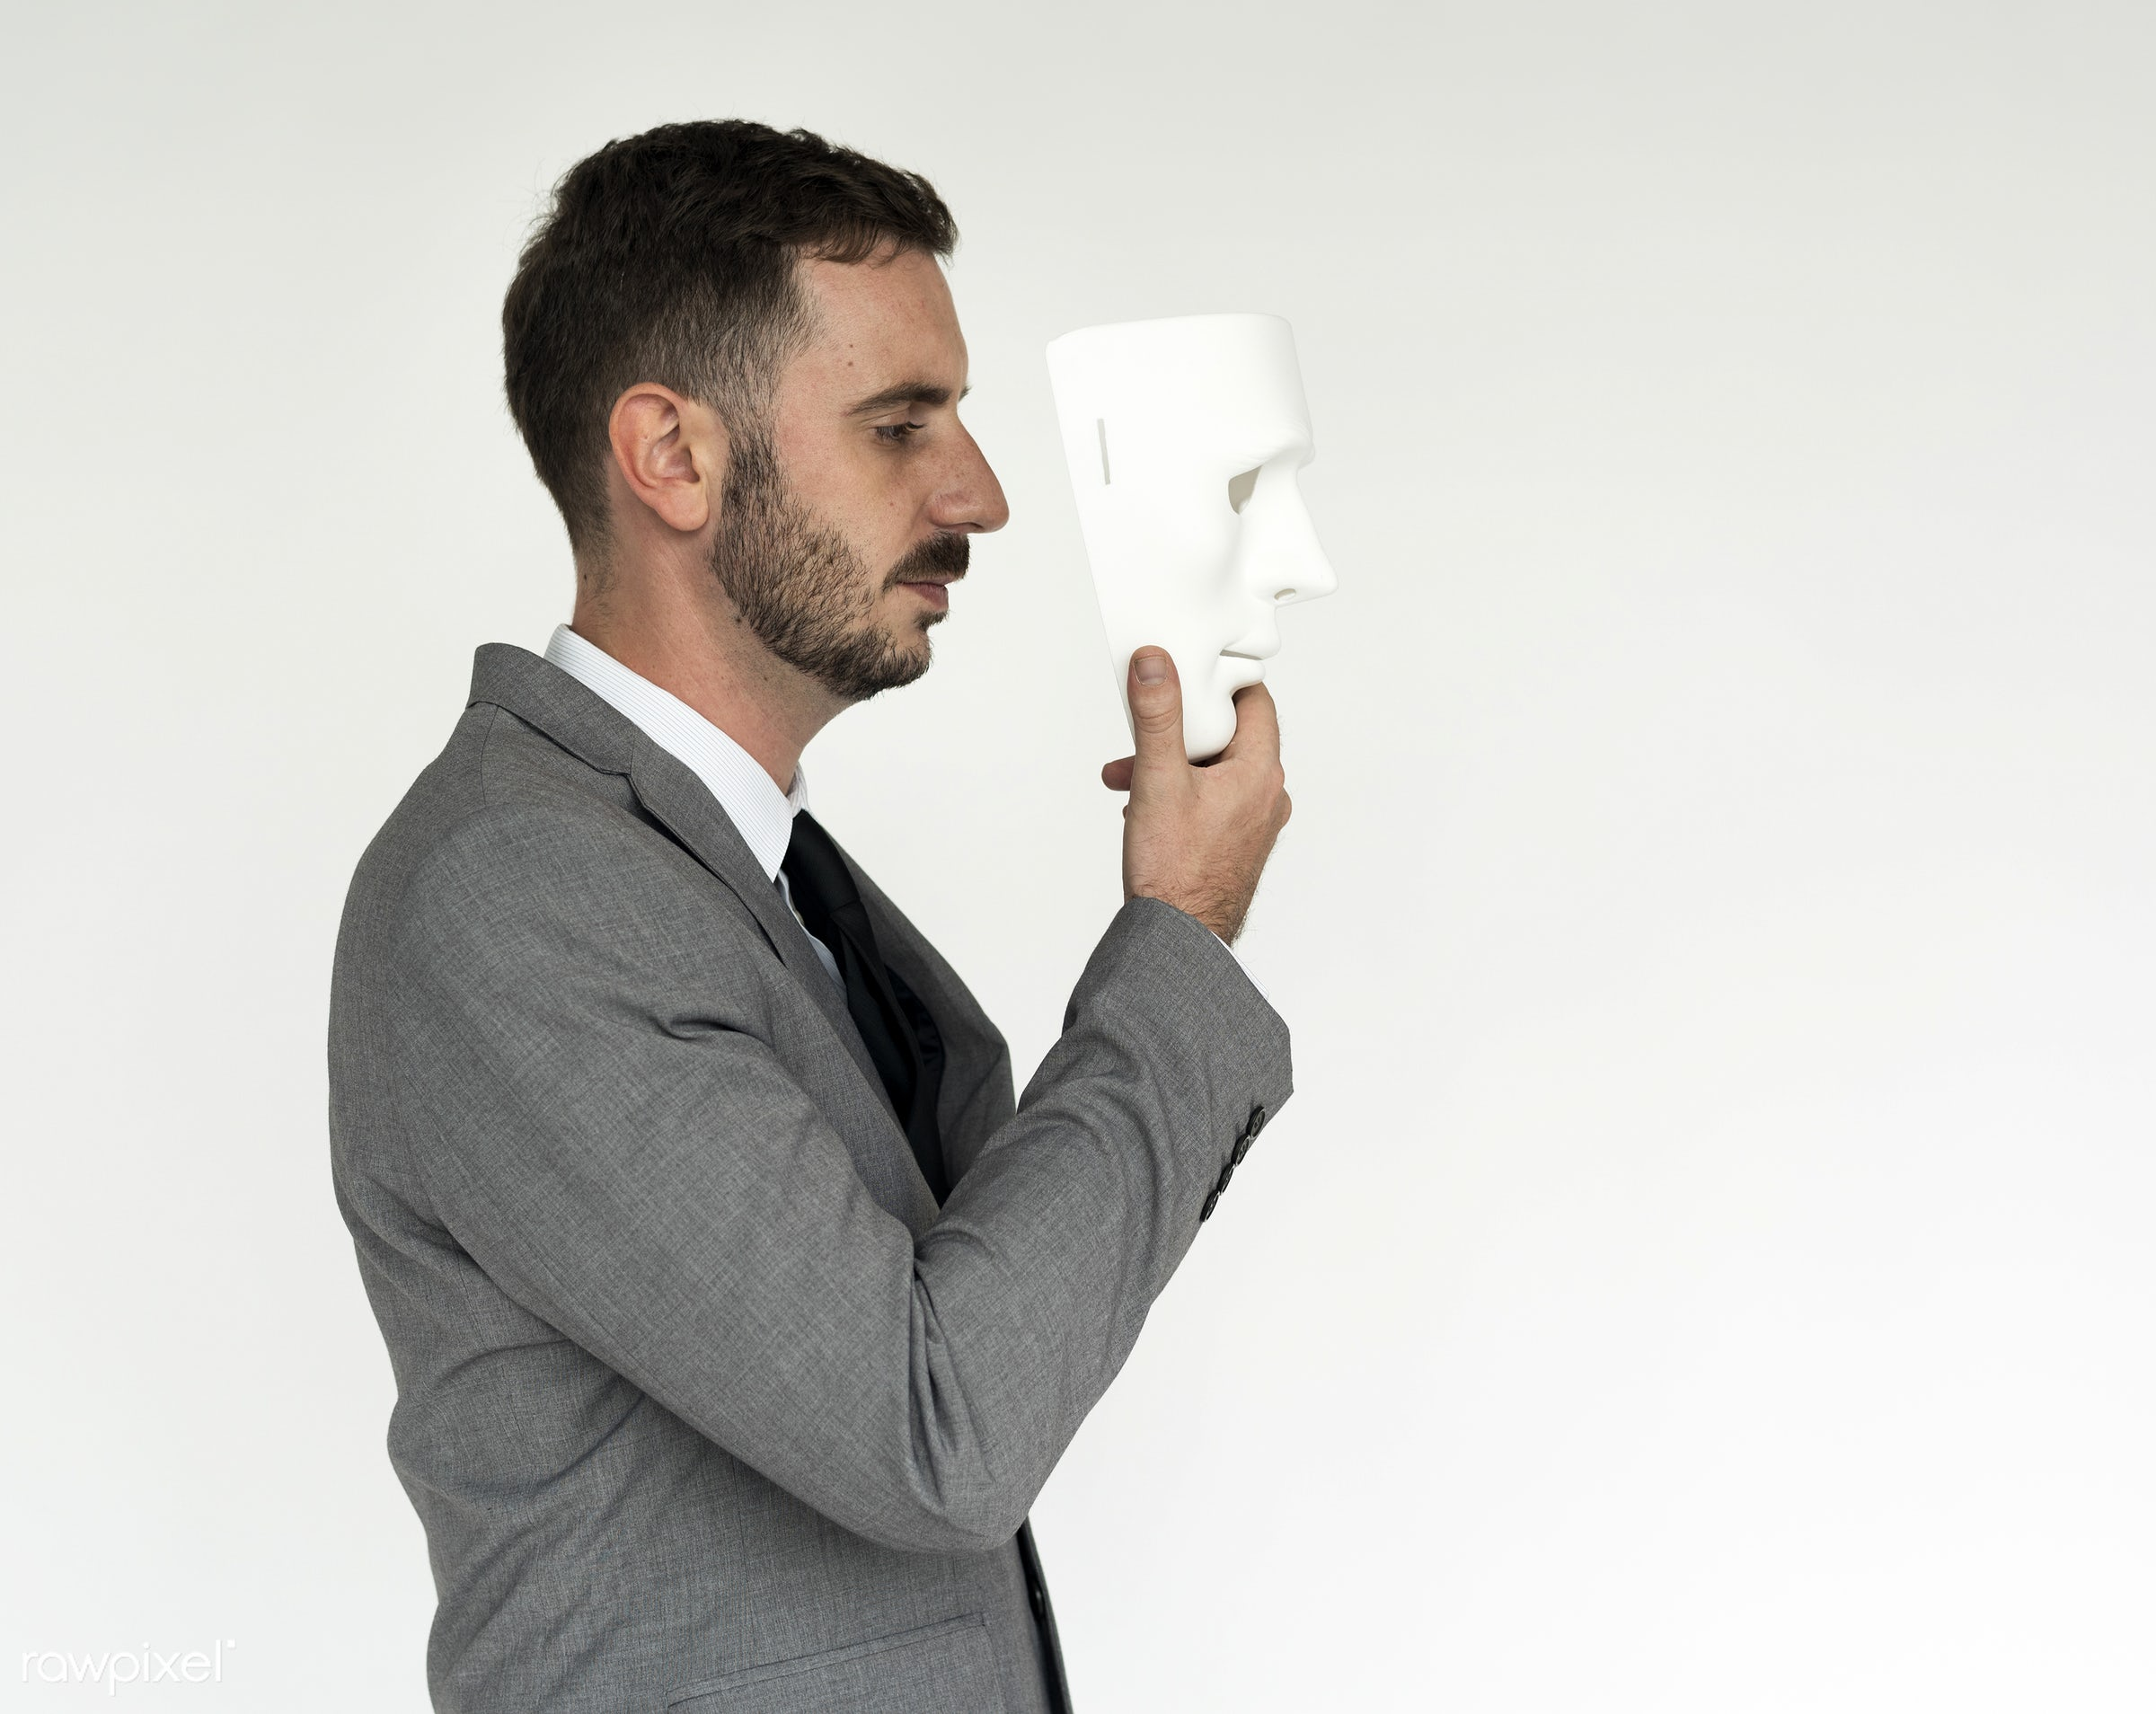 studio, expression, person, model, white collar worker, spy, isolated on white, mask, fraud, people, business, anonymous,...